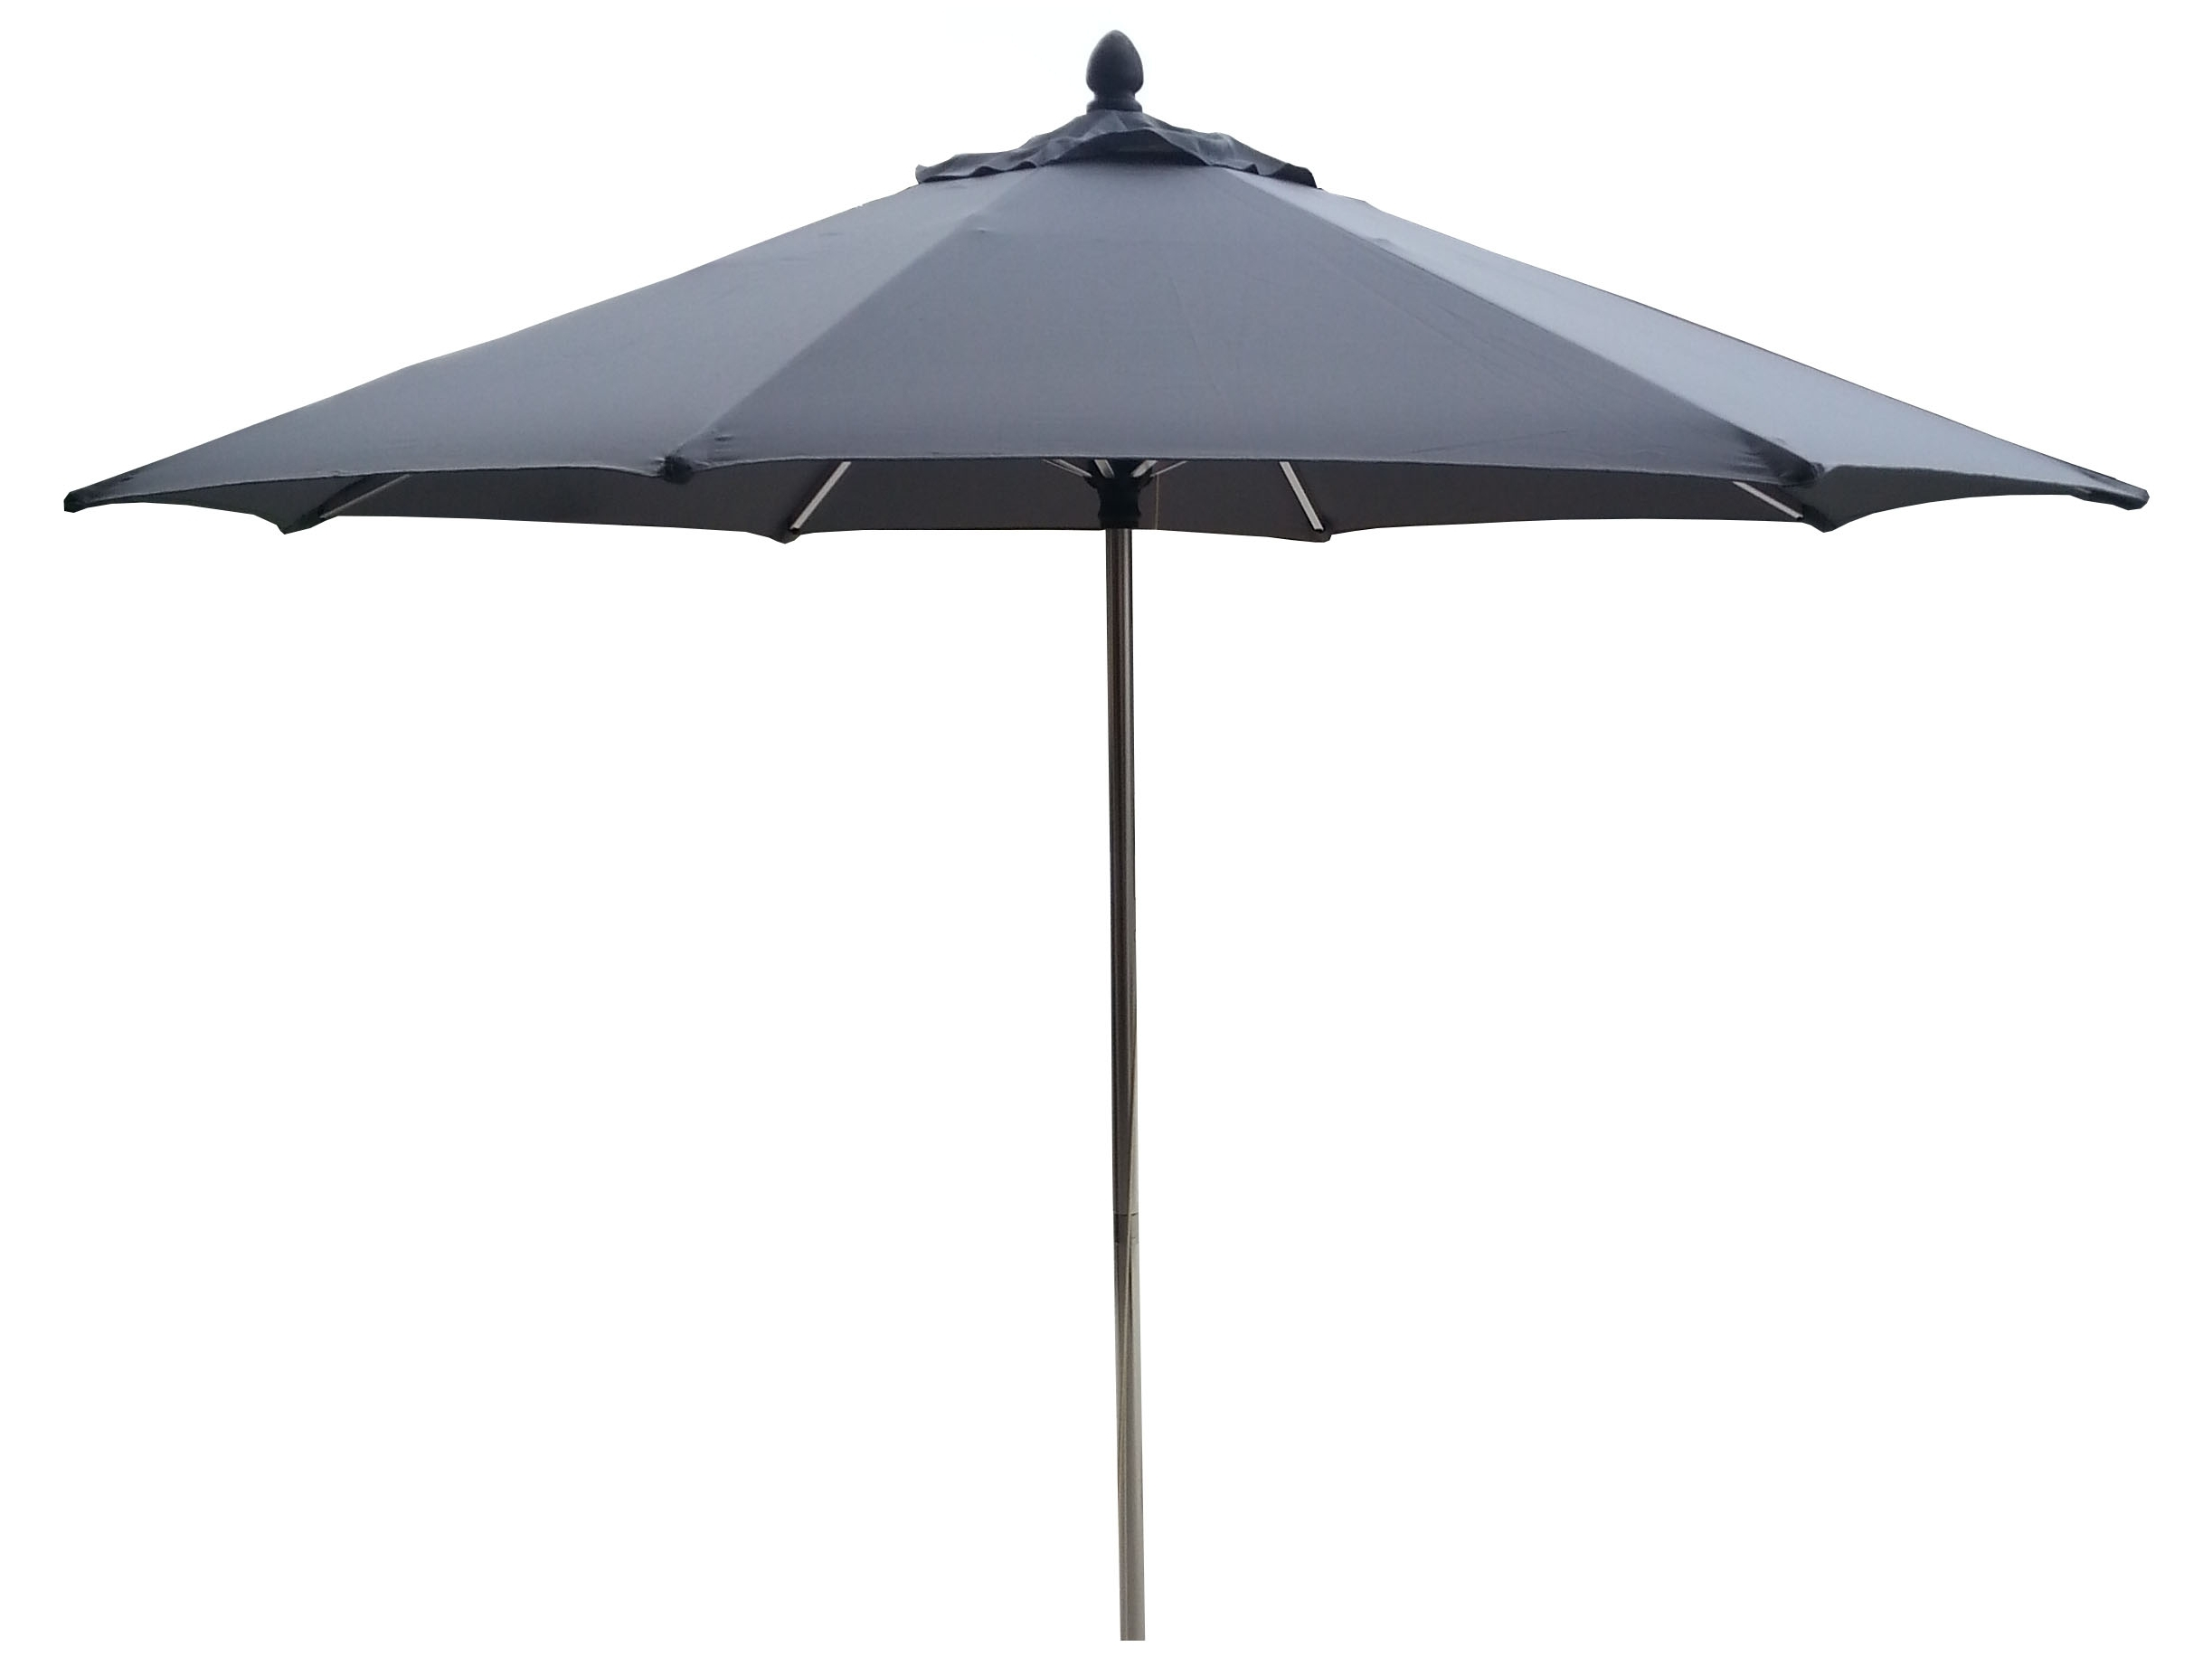 Market Umbrella Archives – Rainbrella With Current Grey Patio Umbrellas (View 2 of 20)